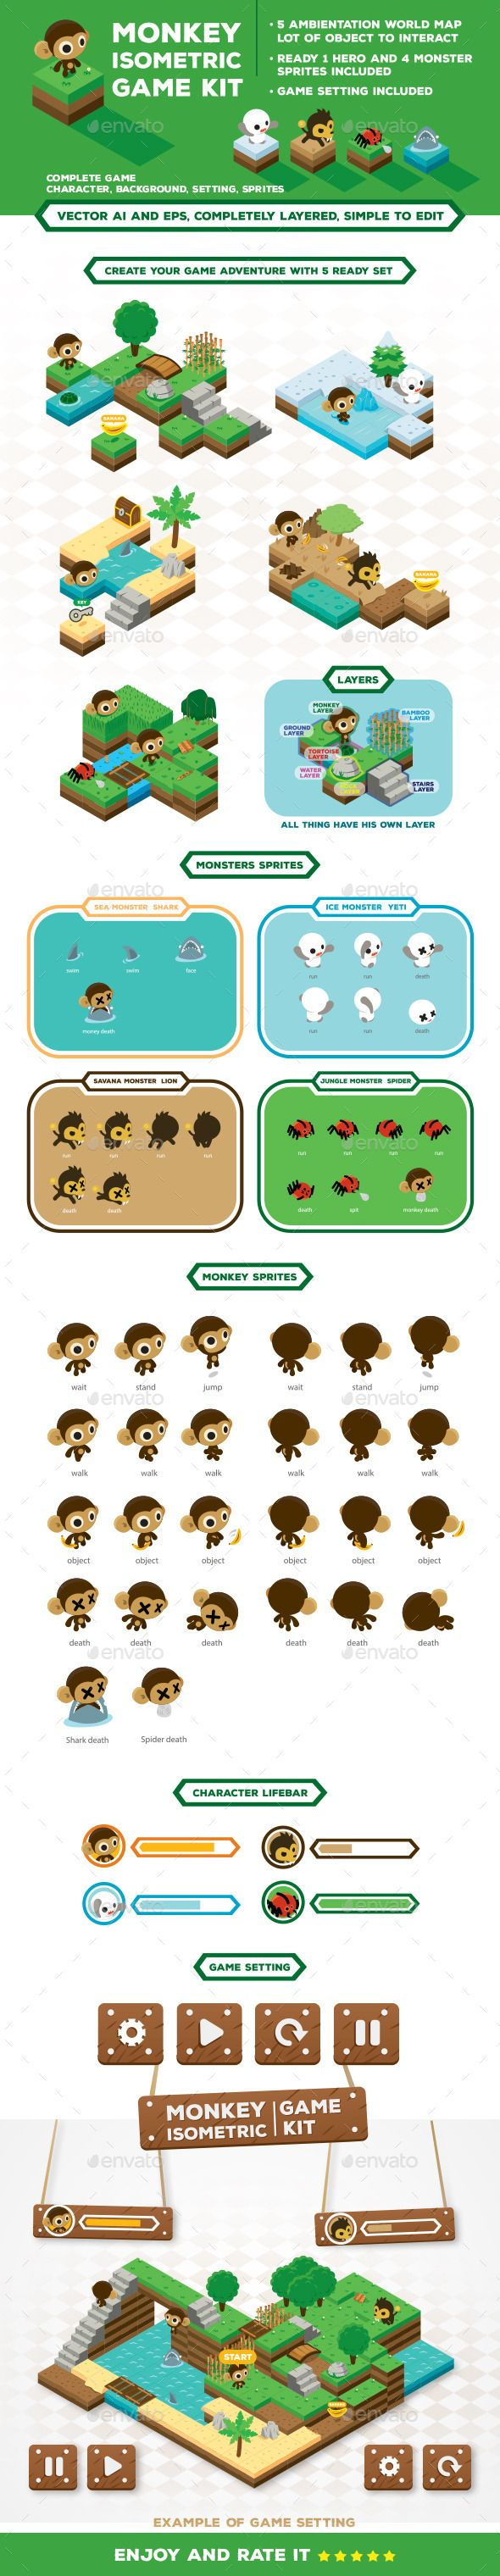 Monkey Isometric Game Kit Map Creator (Vector EPS, AI Illustrator, CS, 4 directional, android, arcade, assets, background, buttons, character, interface, ipad, iphone, isometric, isometric game, jungle game, kit, labyrinth, logo, map, mobile, monster, objects, obstacles, play, rpg, sea, set, side scrolling, sprites, sprites sheet, vector)